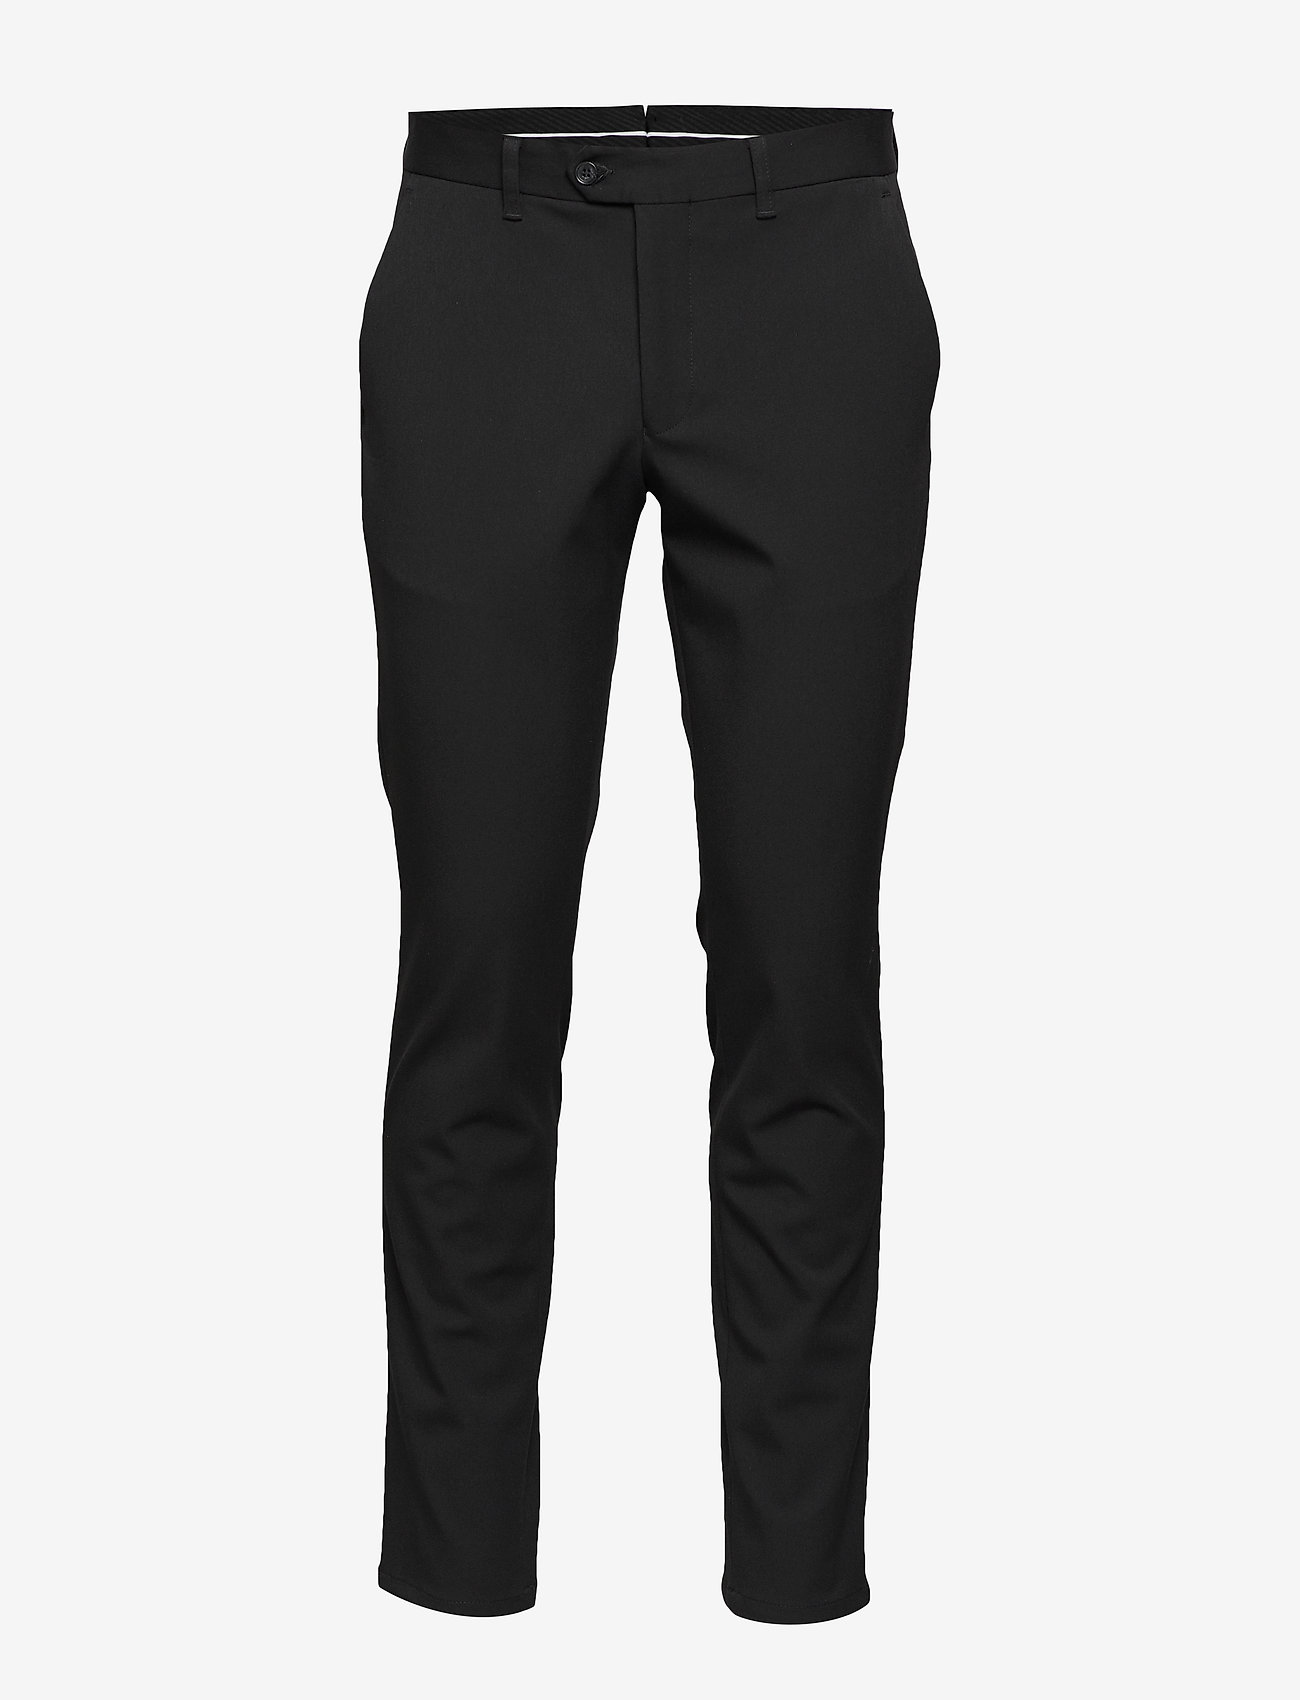 Selected Homme - SLHSLIM-CARLO FLEX PANTS B NOOS - suitbukser - black - 0